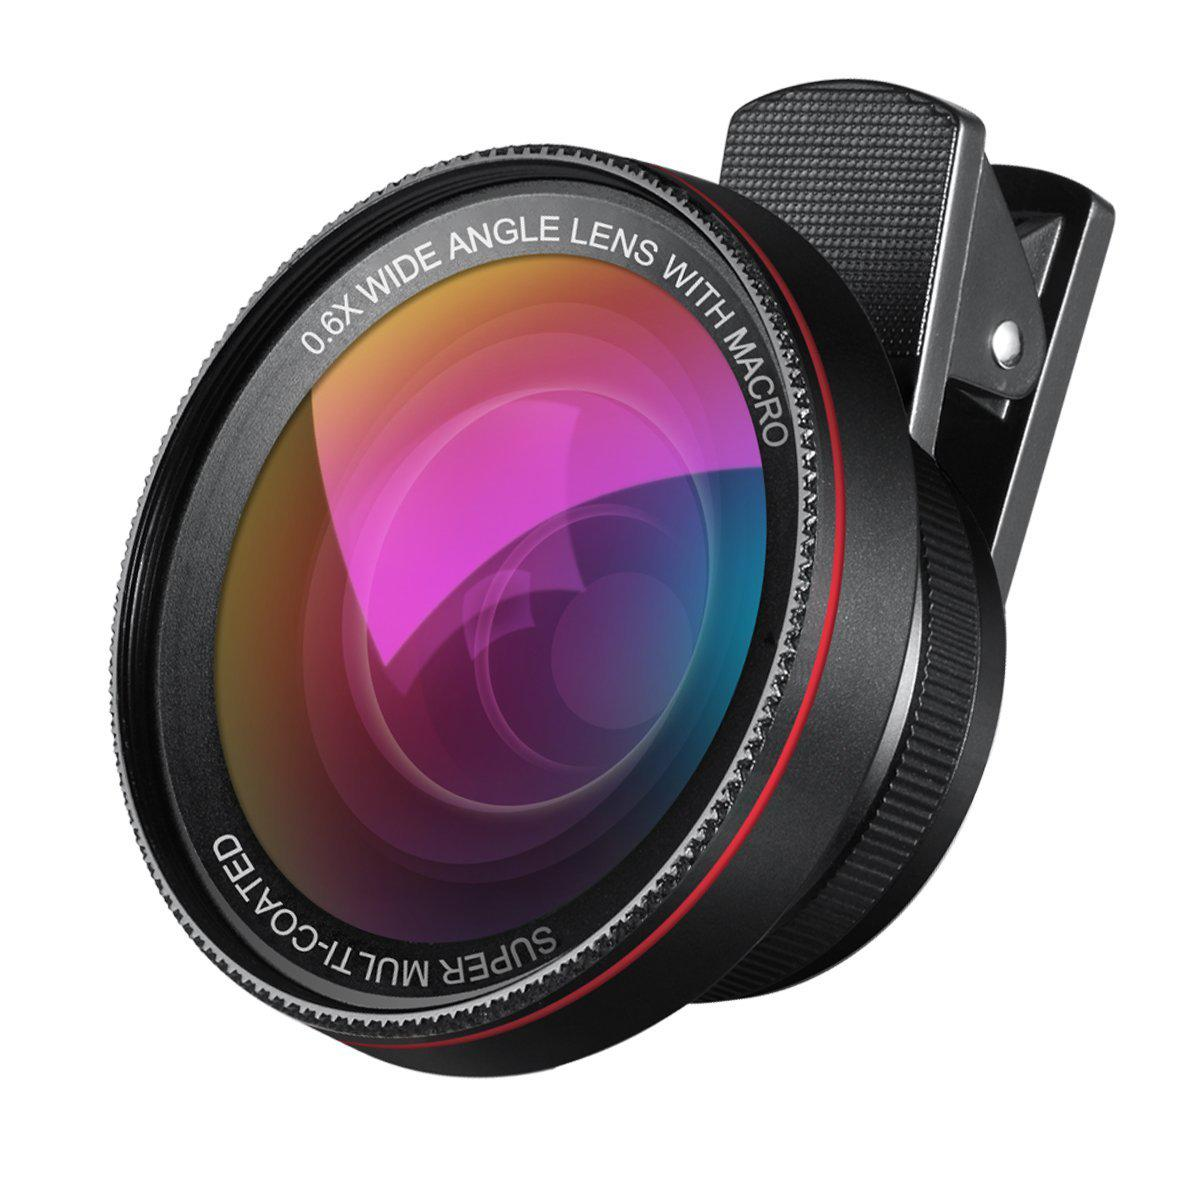 Looking for better quality photos but not wanting to spend the extra money? Check out this affordable option!